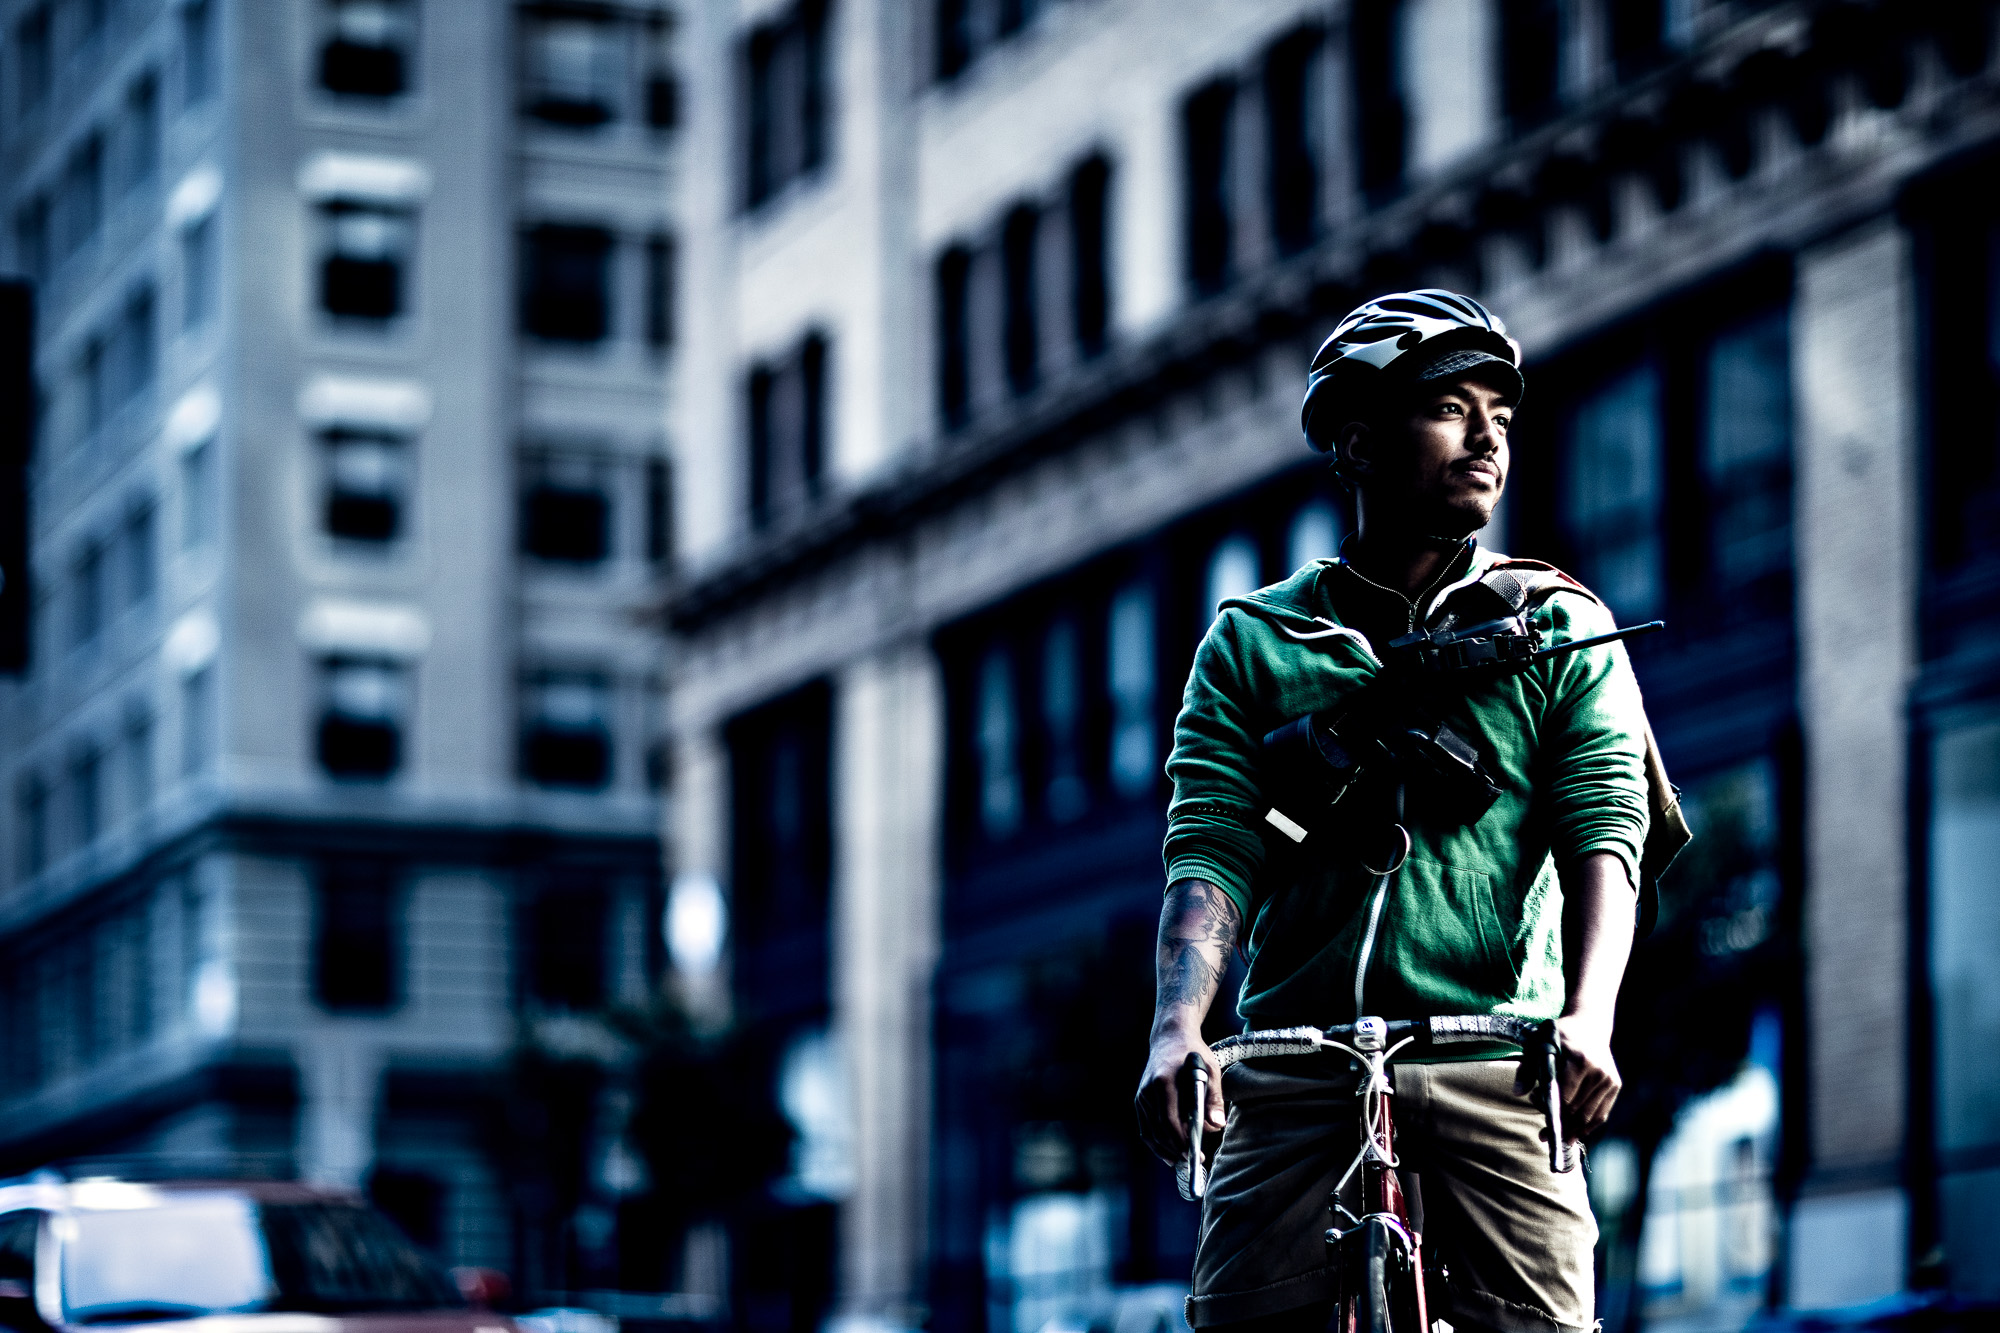 Bike Messenger Portrait for ACT Advertising campaign